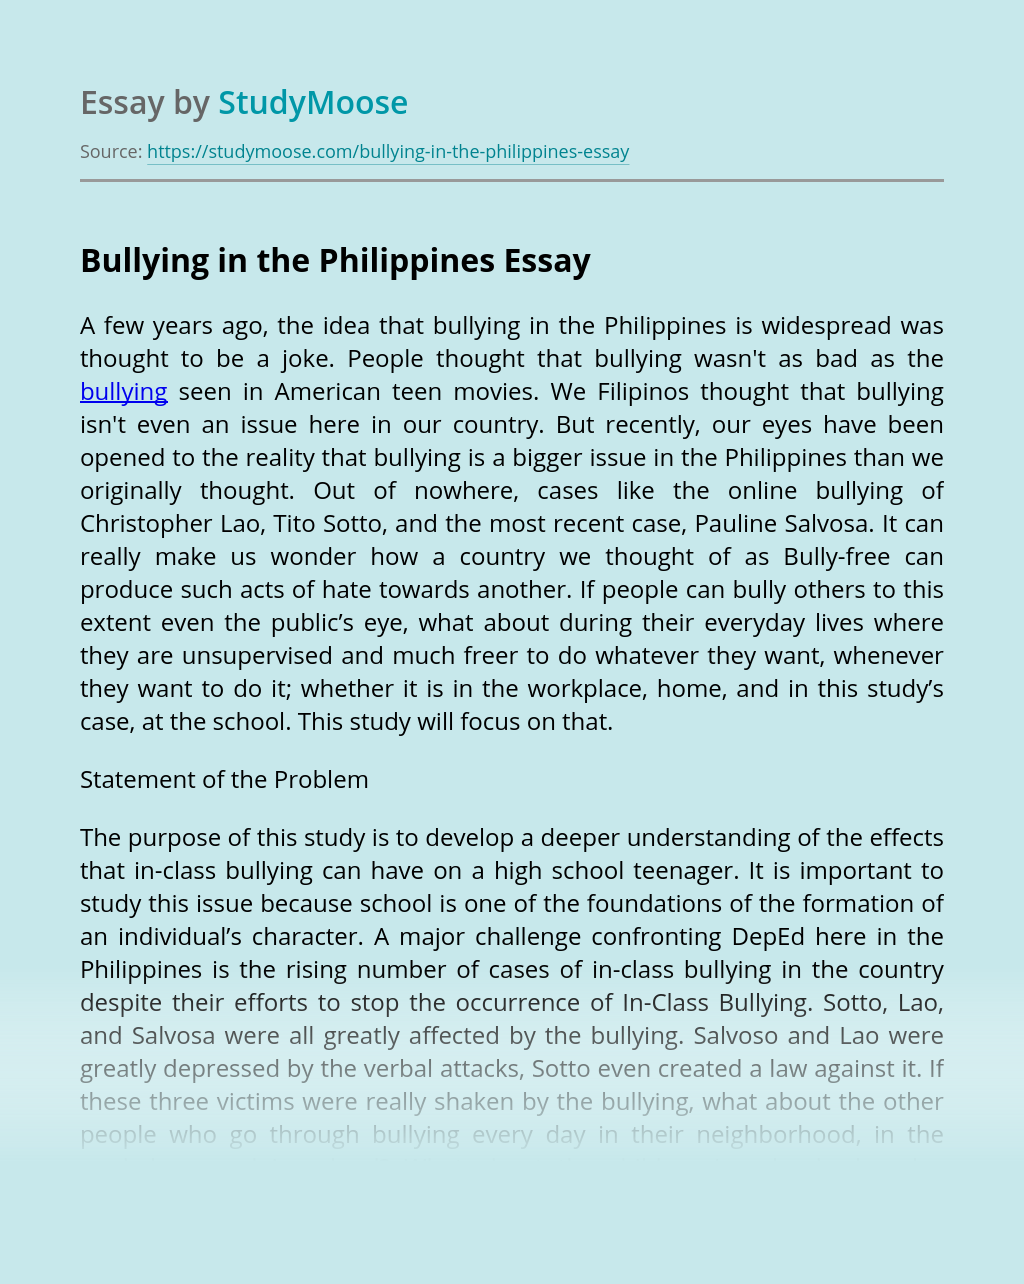 Bullying in the Philippines